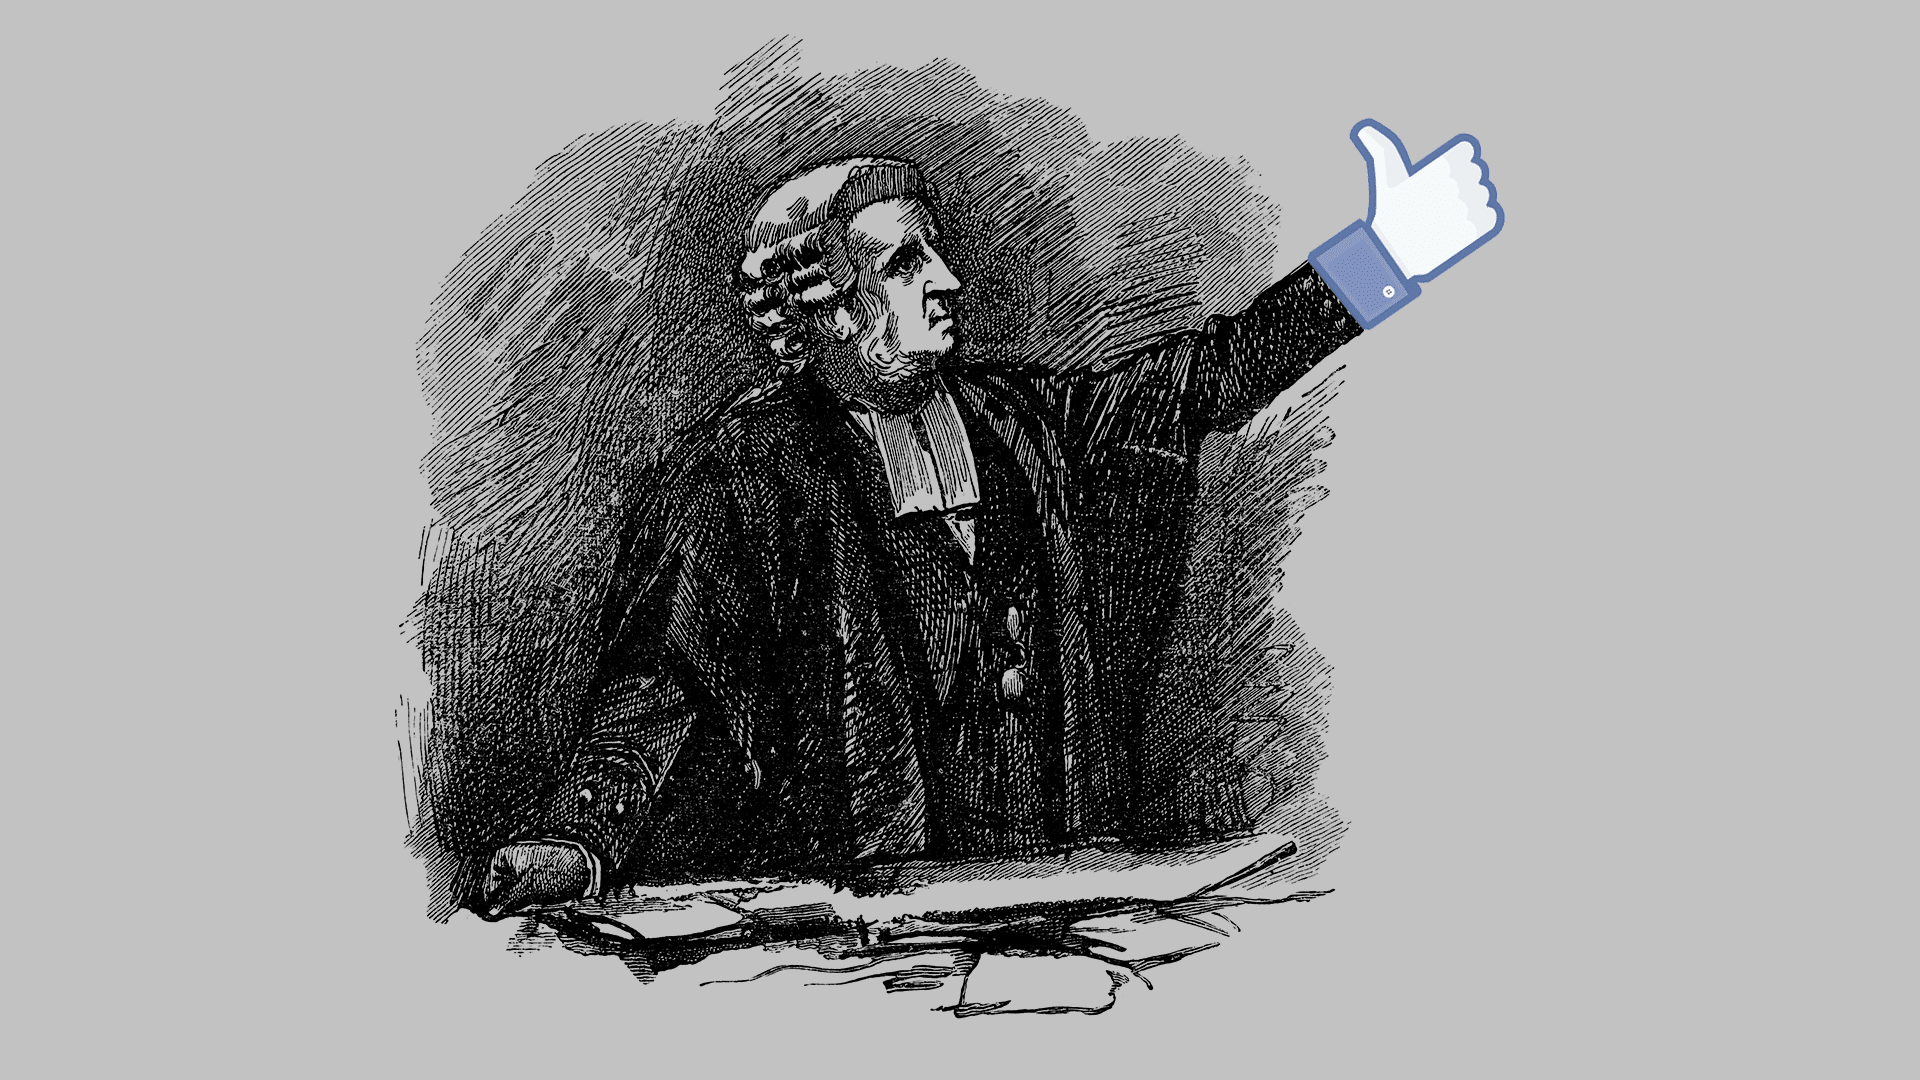 """A classic sketch but with a Facebook """"like"""" button covering the hand."""